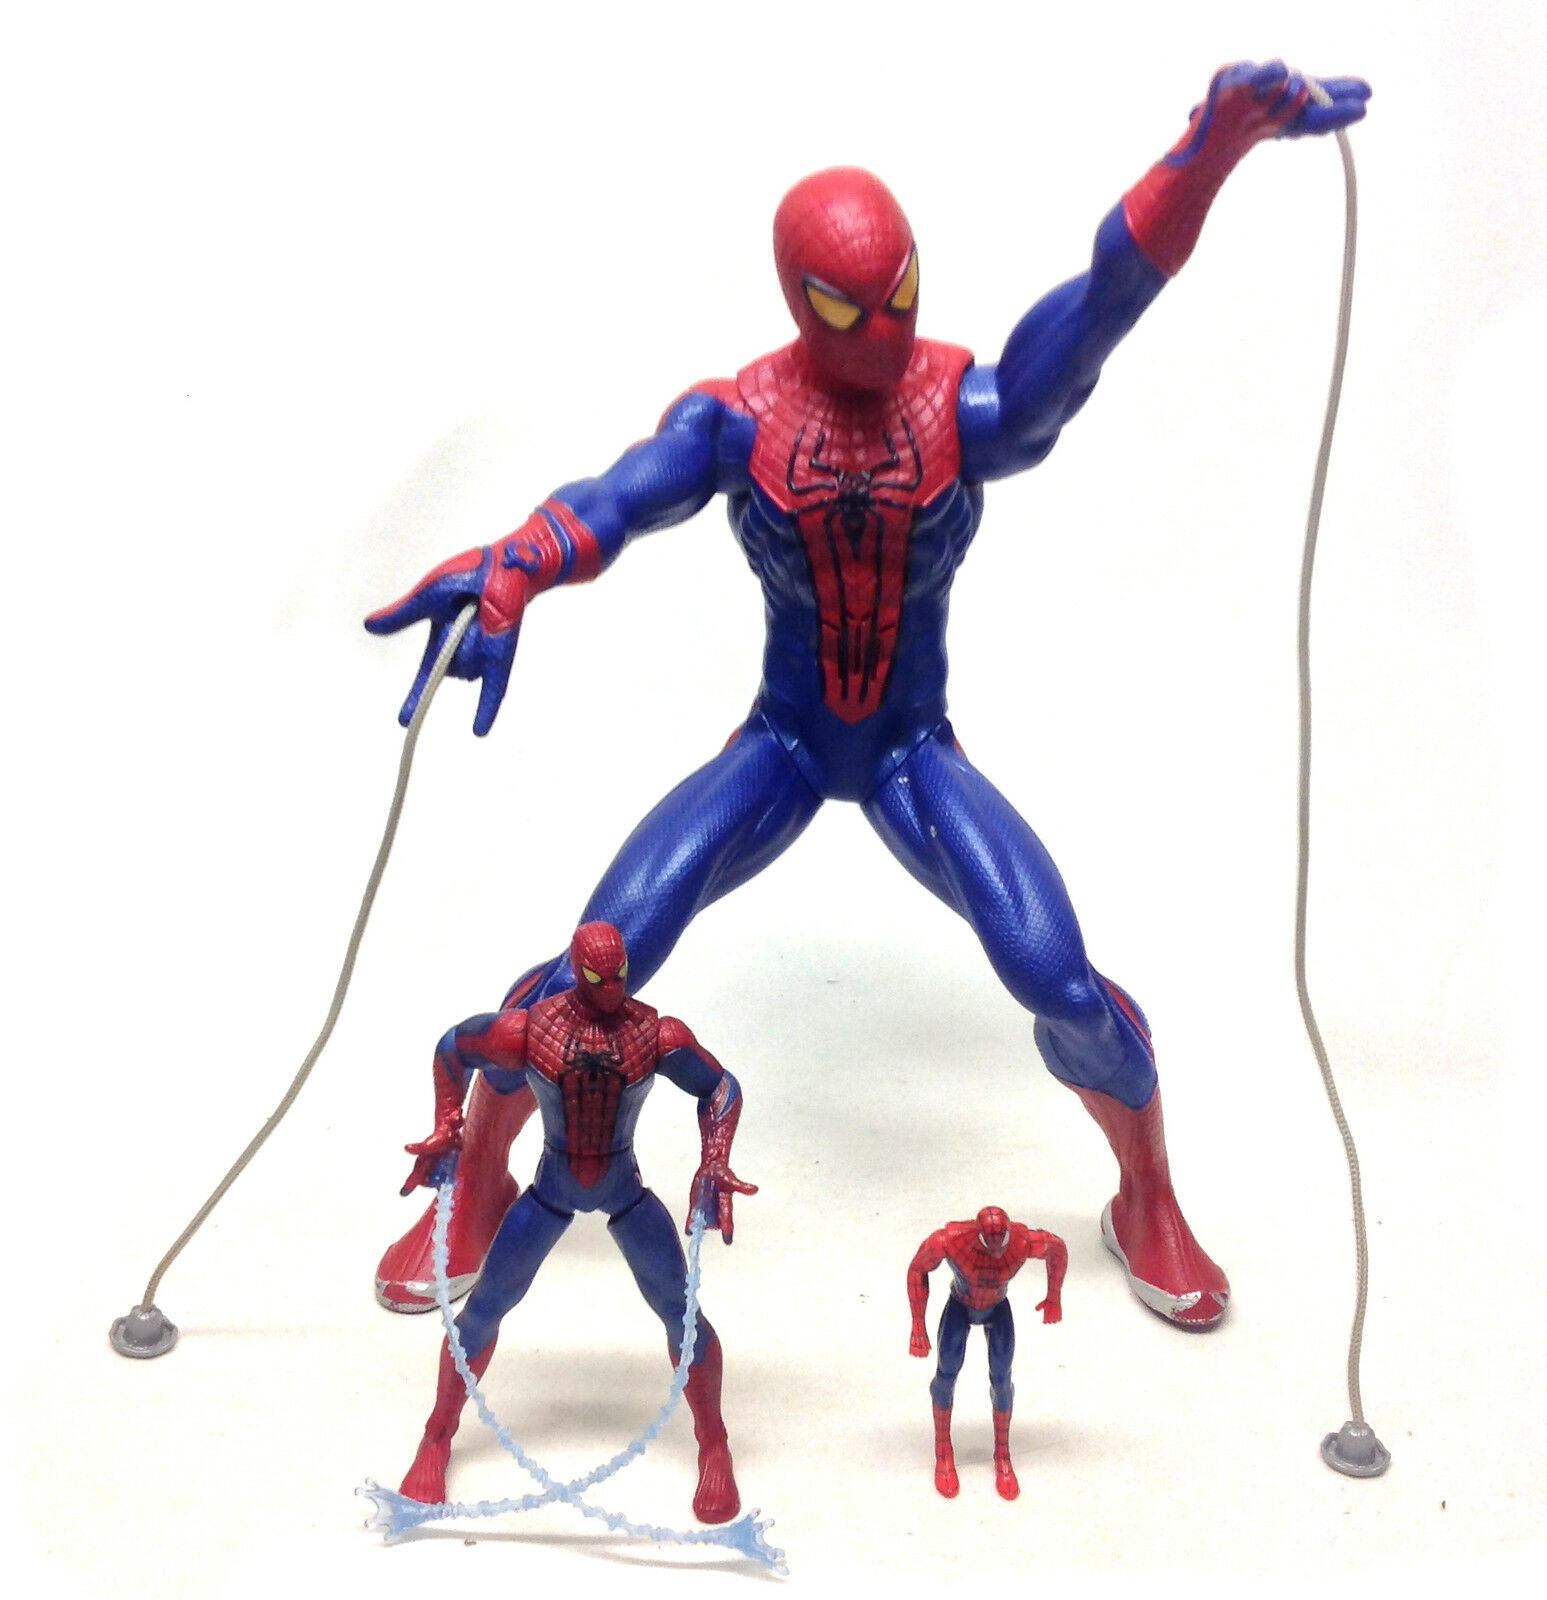 Marvel Comics SPIDERMAN toy action figures 3 different different different sizes lot set f2ae83